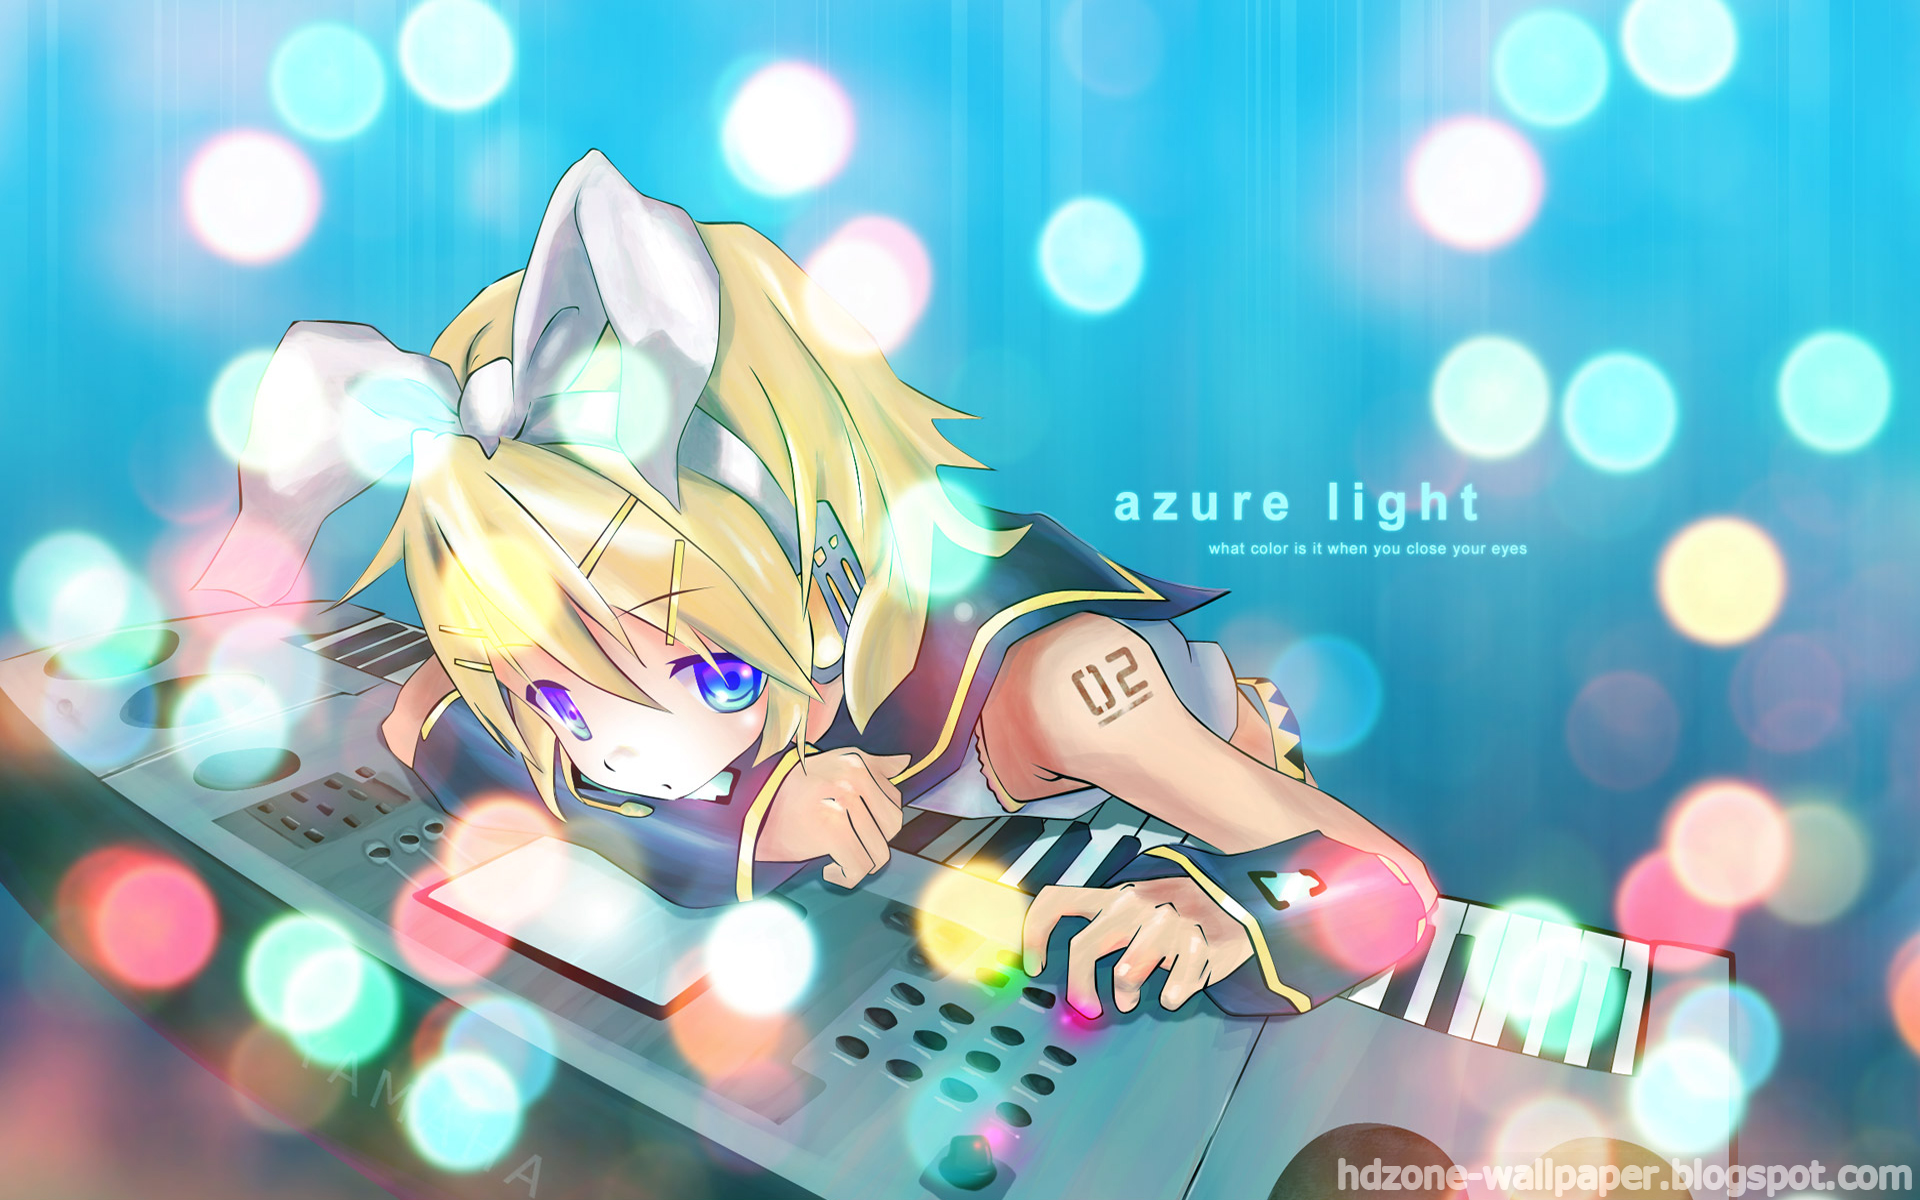 Hd zone wallpaper vocaloid page 1 for Home zone wallpaper bearwood